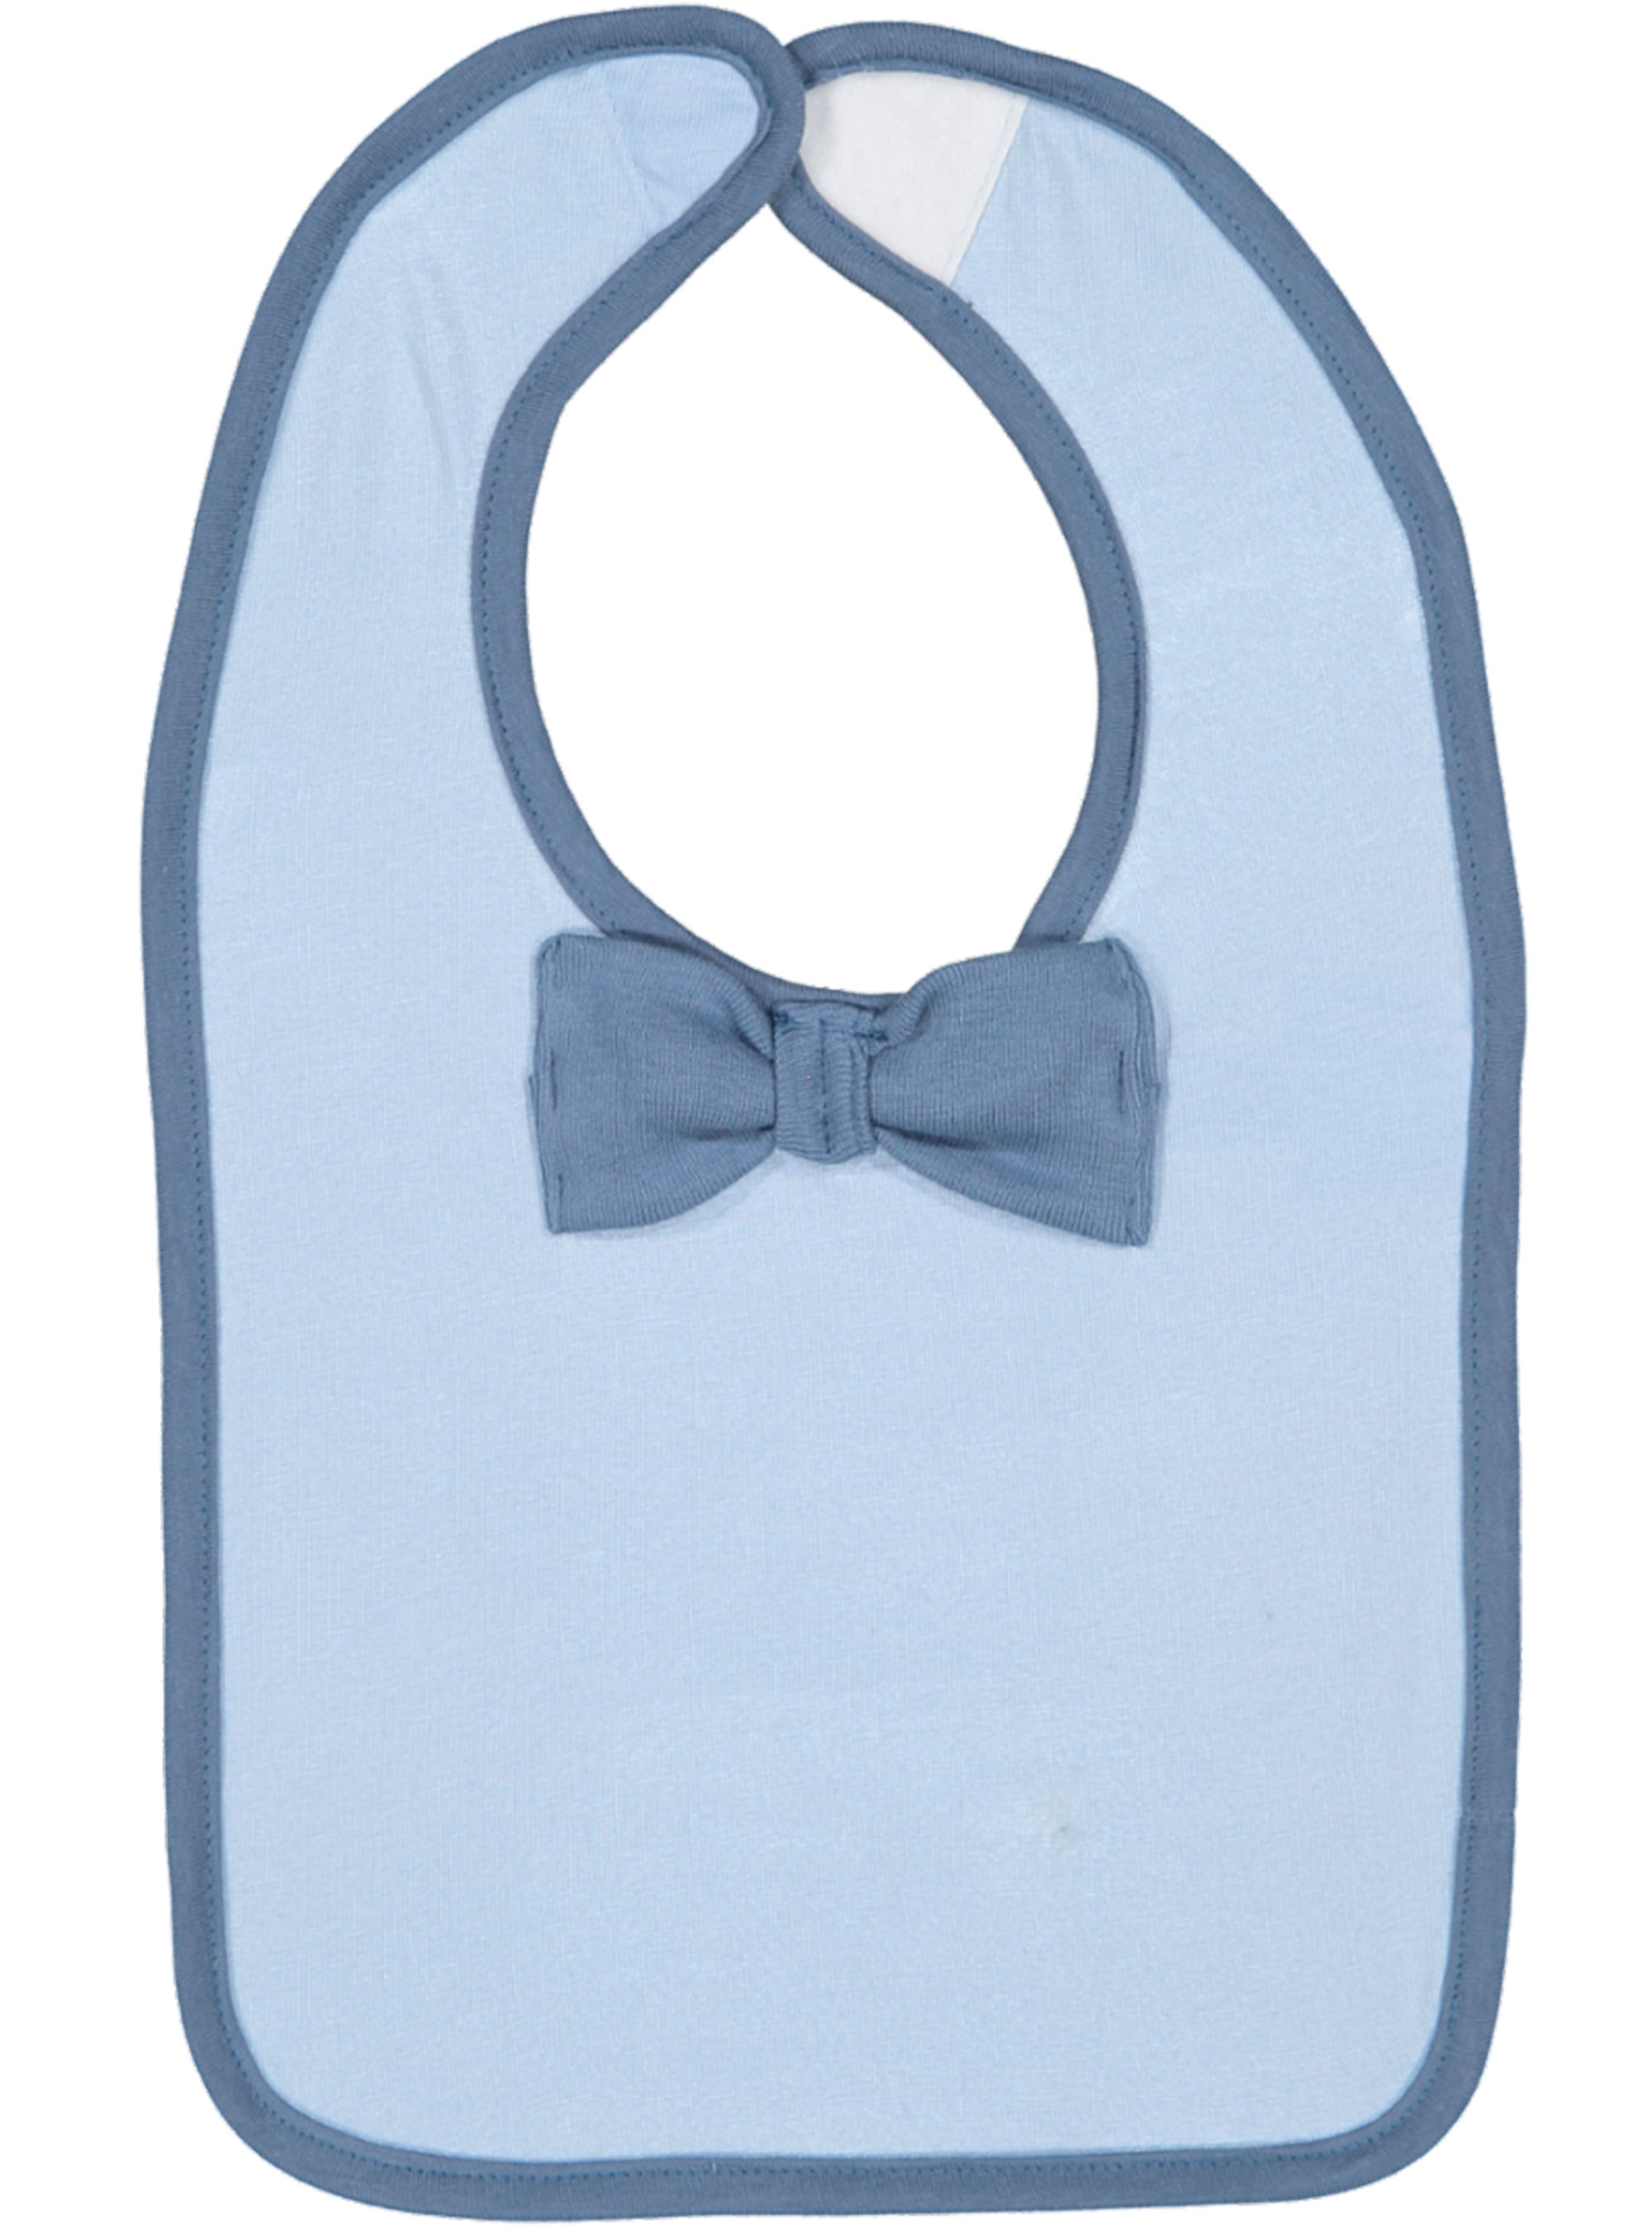 Rabbit Skins 1002 - Infant Bow Tie Bib